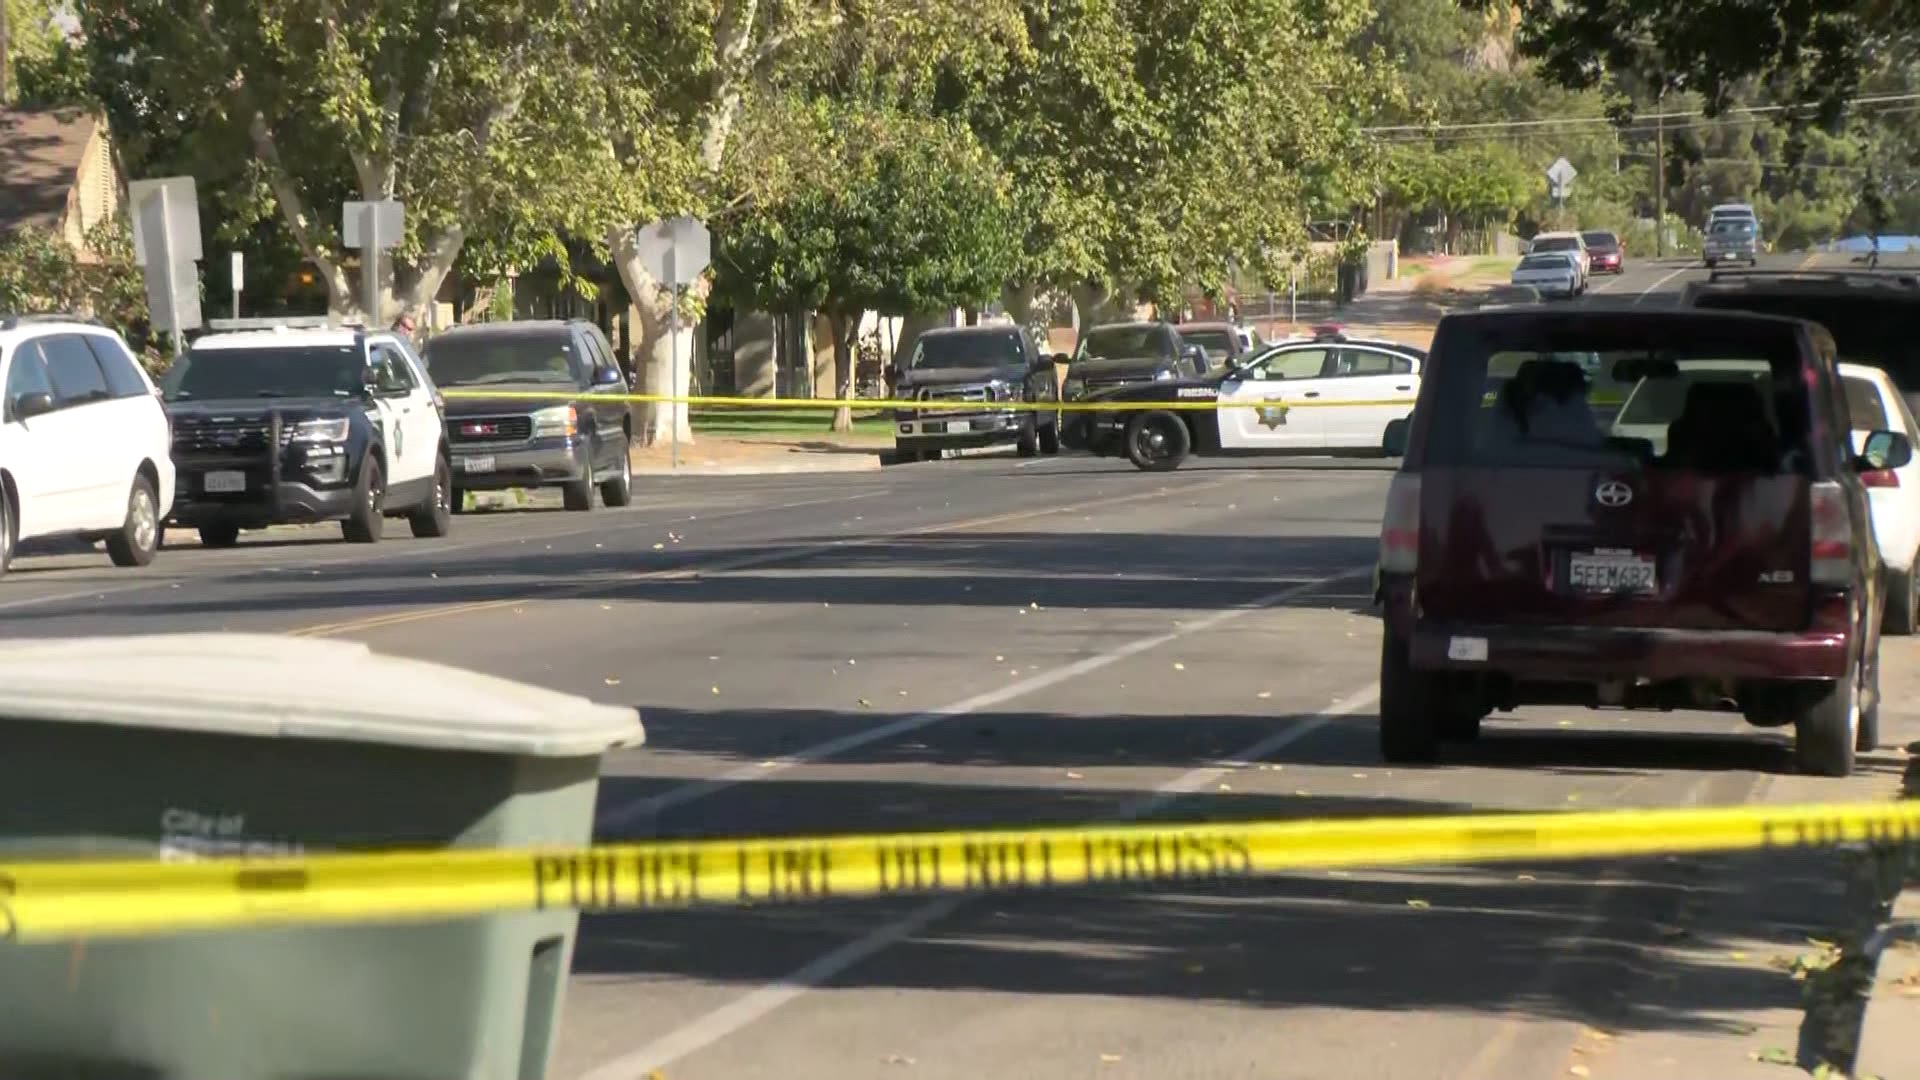 Car-to-car shooting in Fresno puts man in the hospital, police say